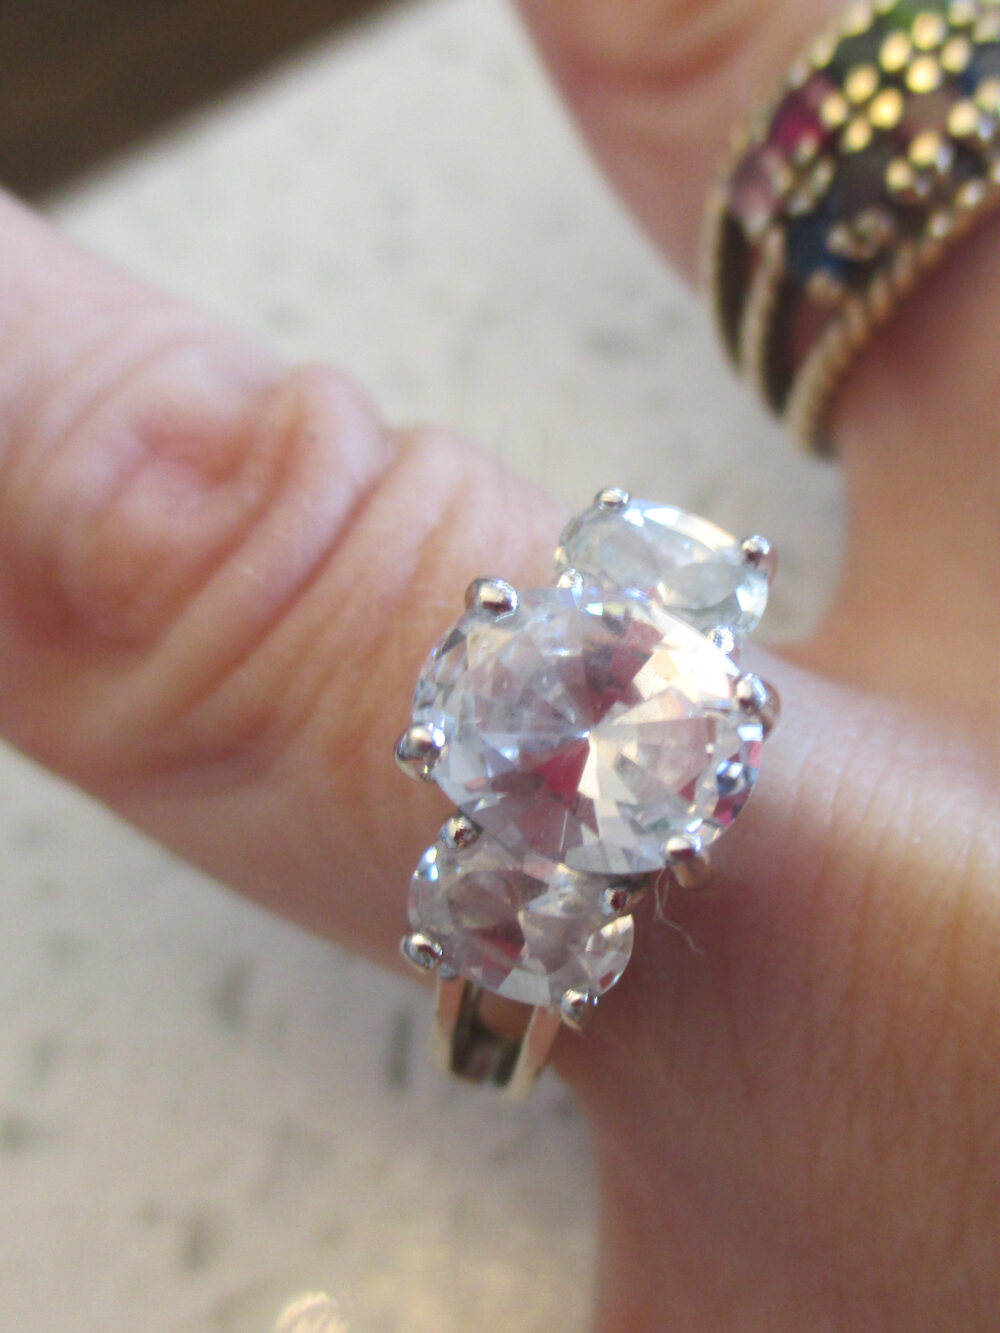 Vintage Size 6 Three Stone Cz Engagement Ring, Silver Setting, Hallmarked Ja, Gift For Her, Wedding, Bridal